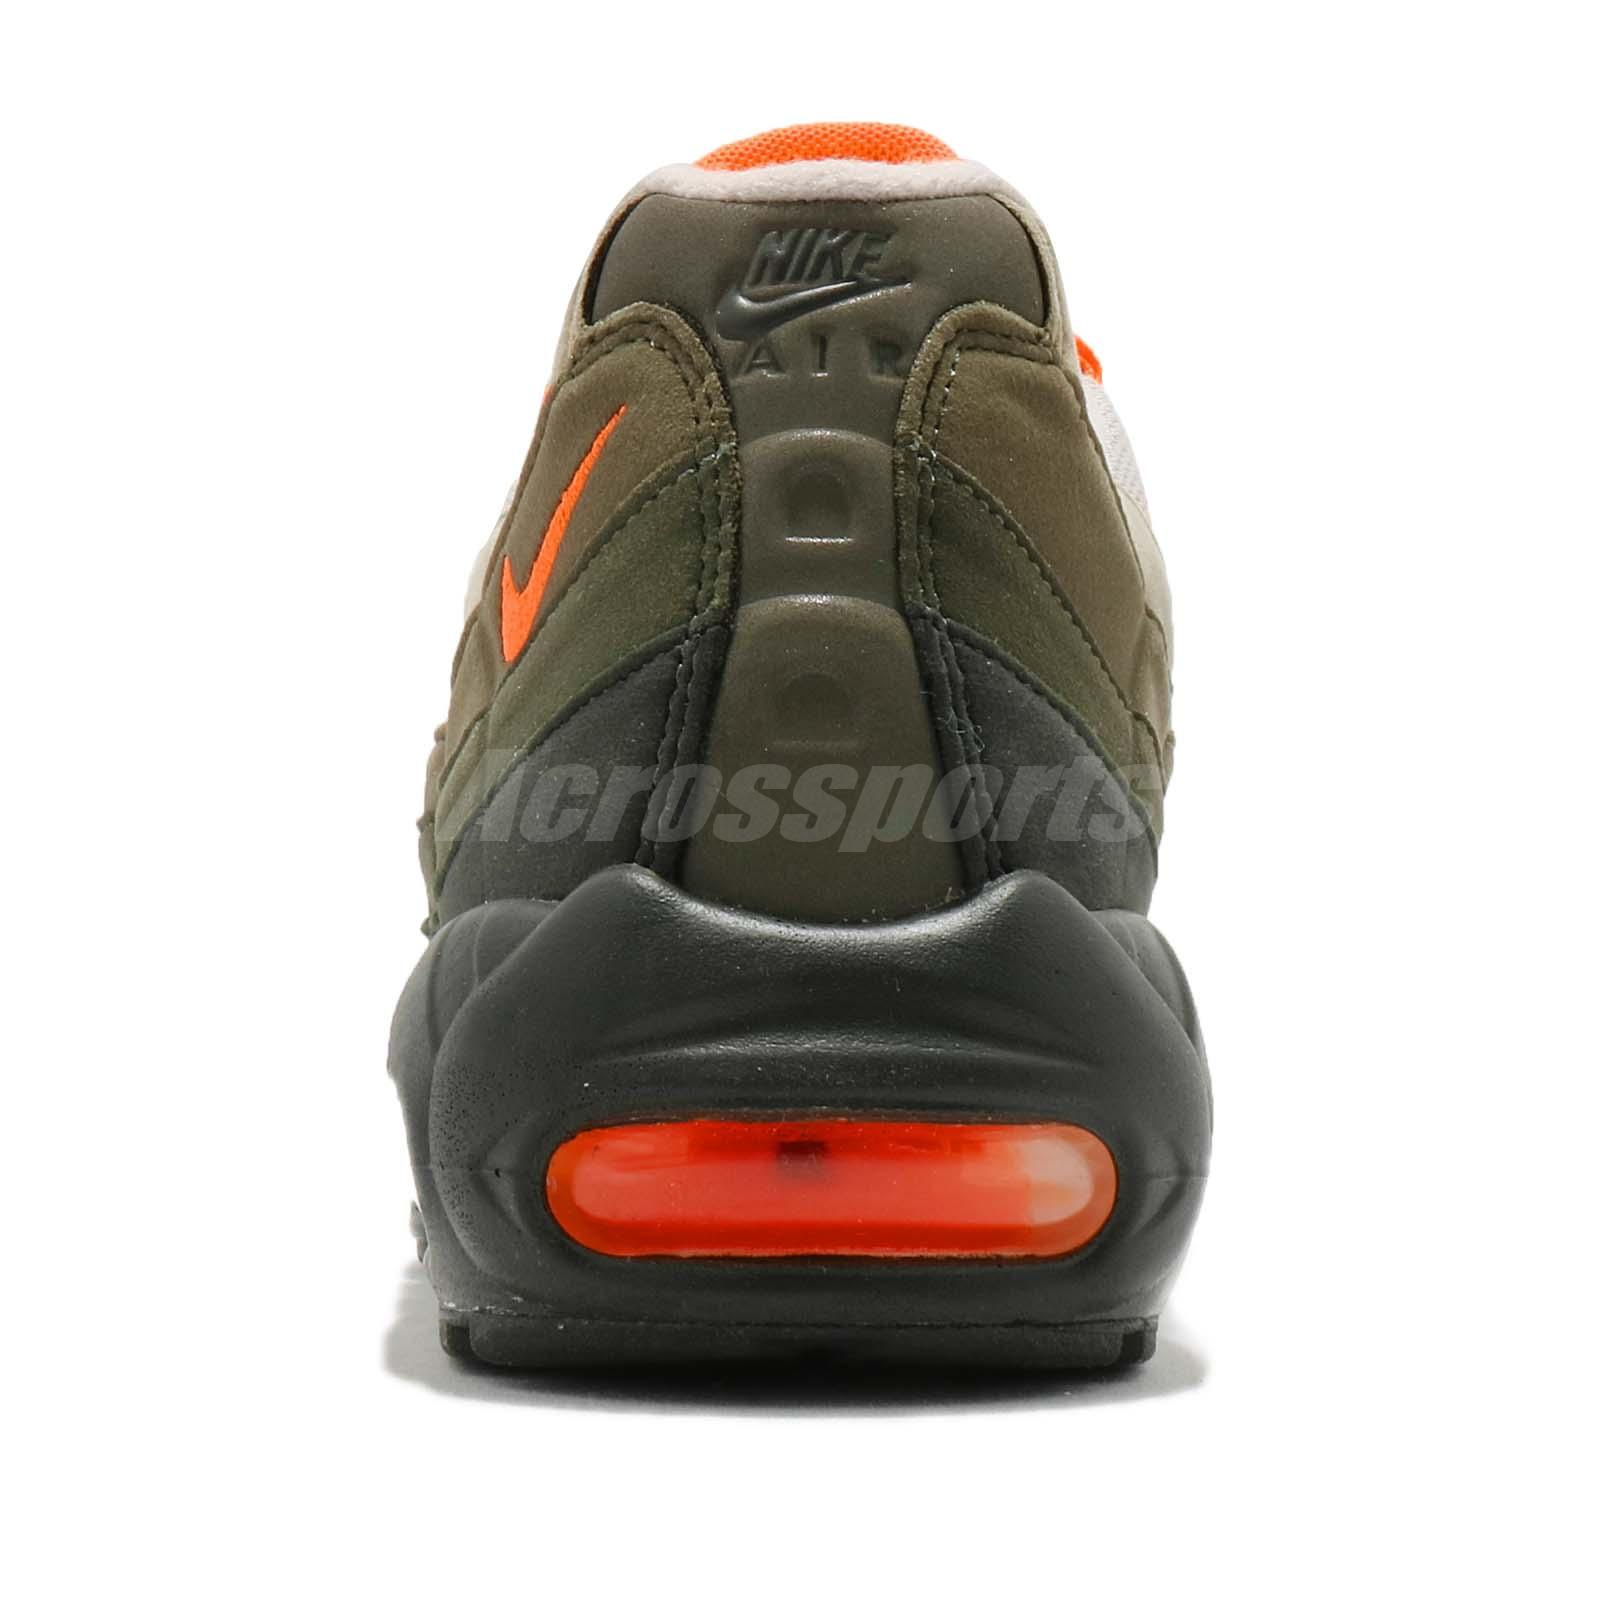 Shoes Og Air String Max Total Neutral Nike Orange Nsw Green 95 Olive xFOBPwP